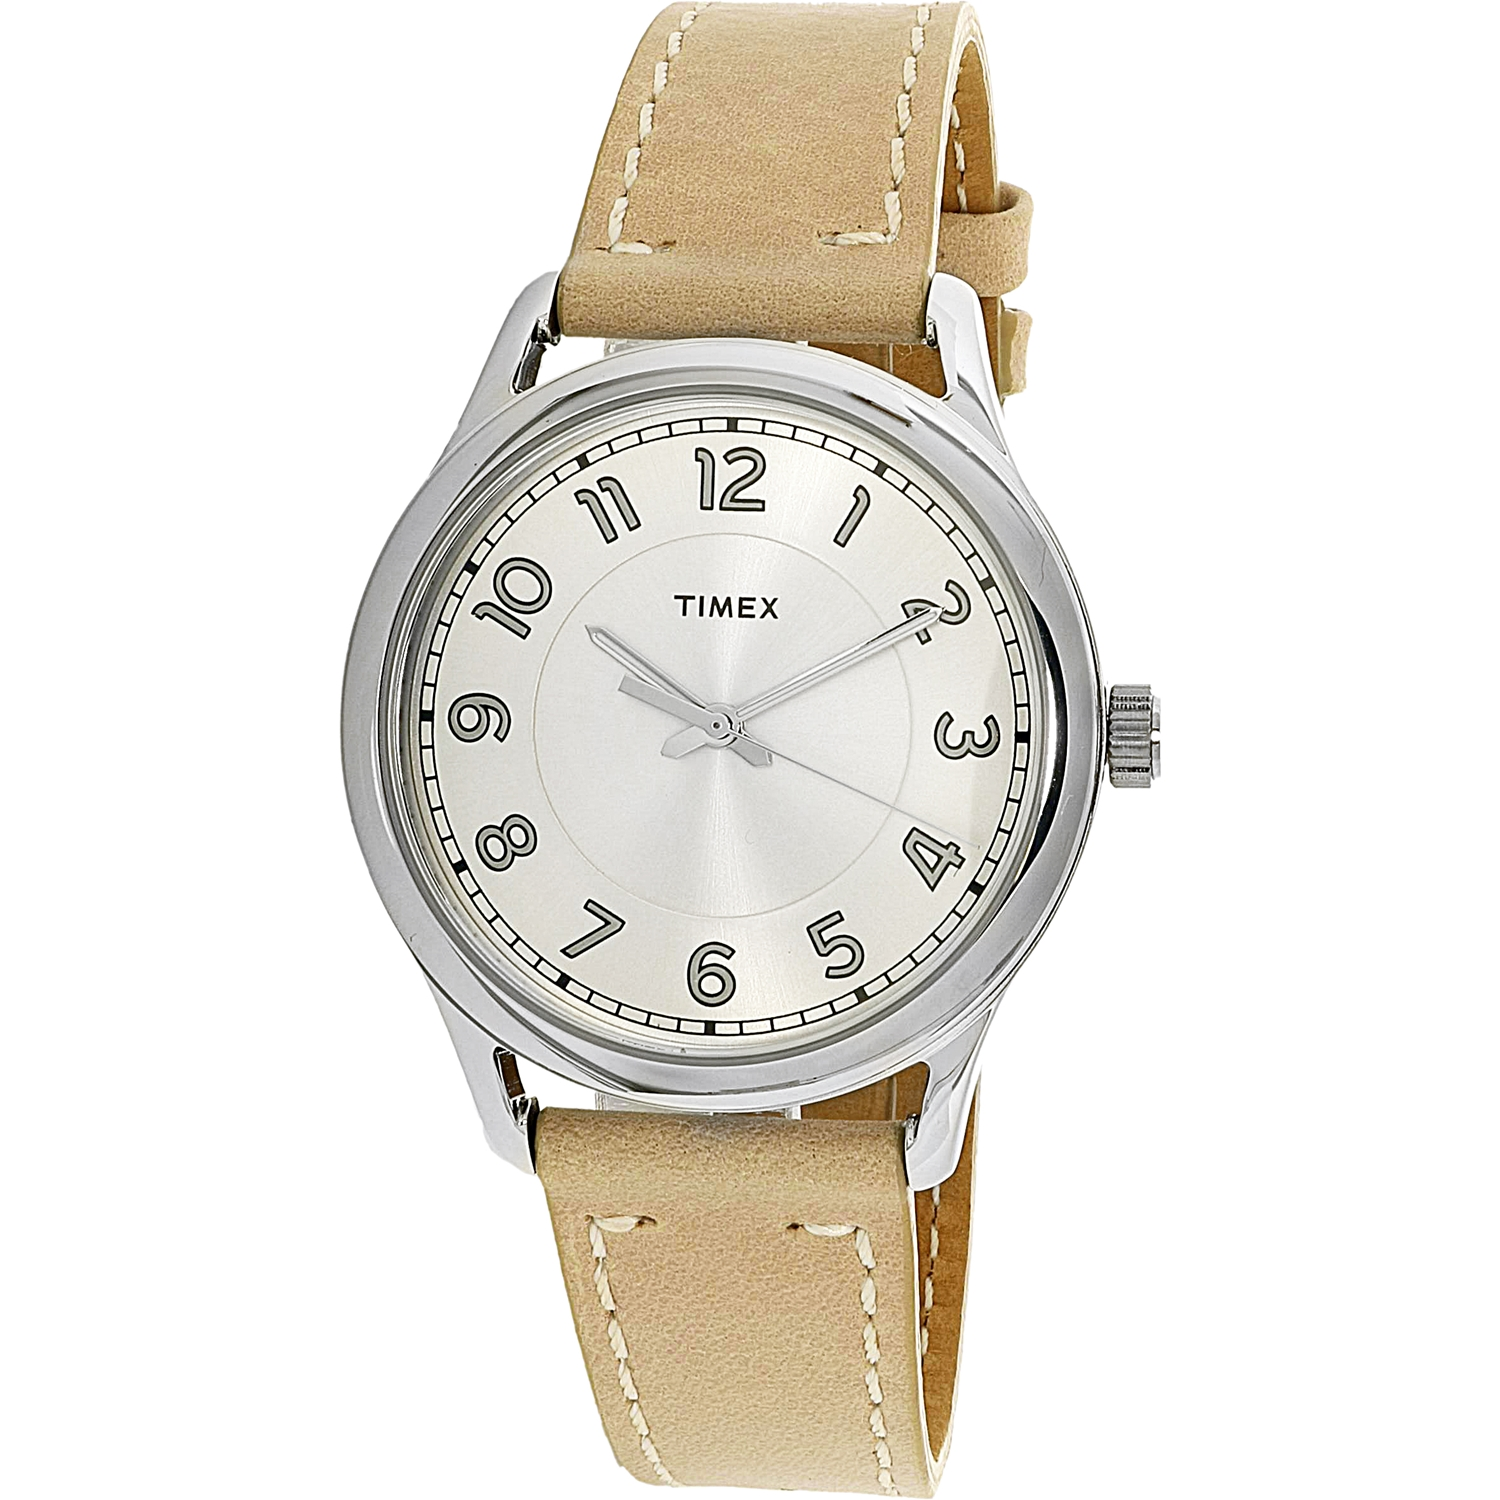 Timex Women's TW2R23200 Tan Leather Analog Quartz Fashion Watch